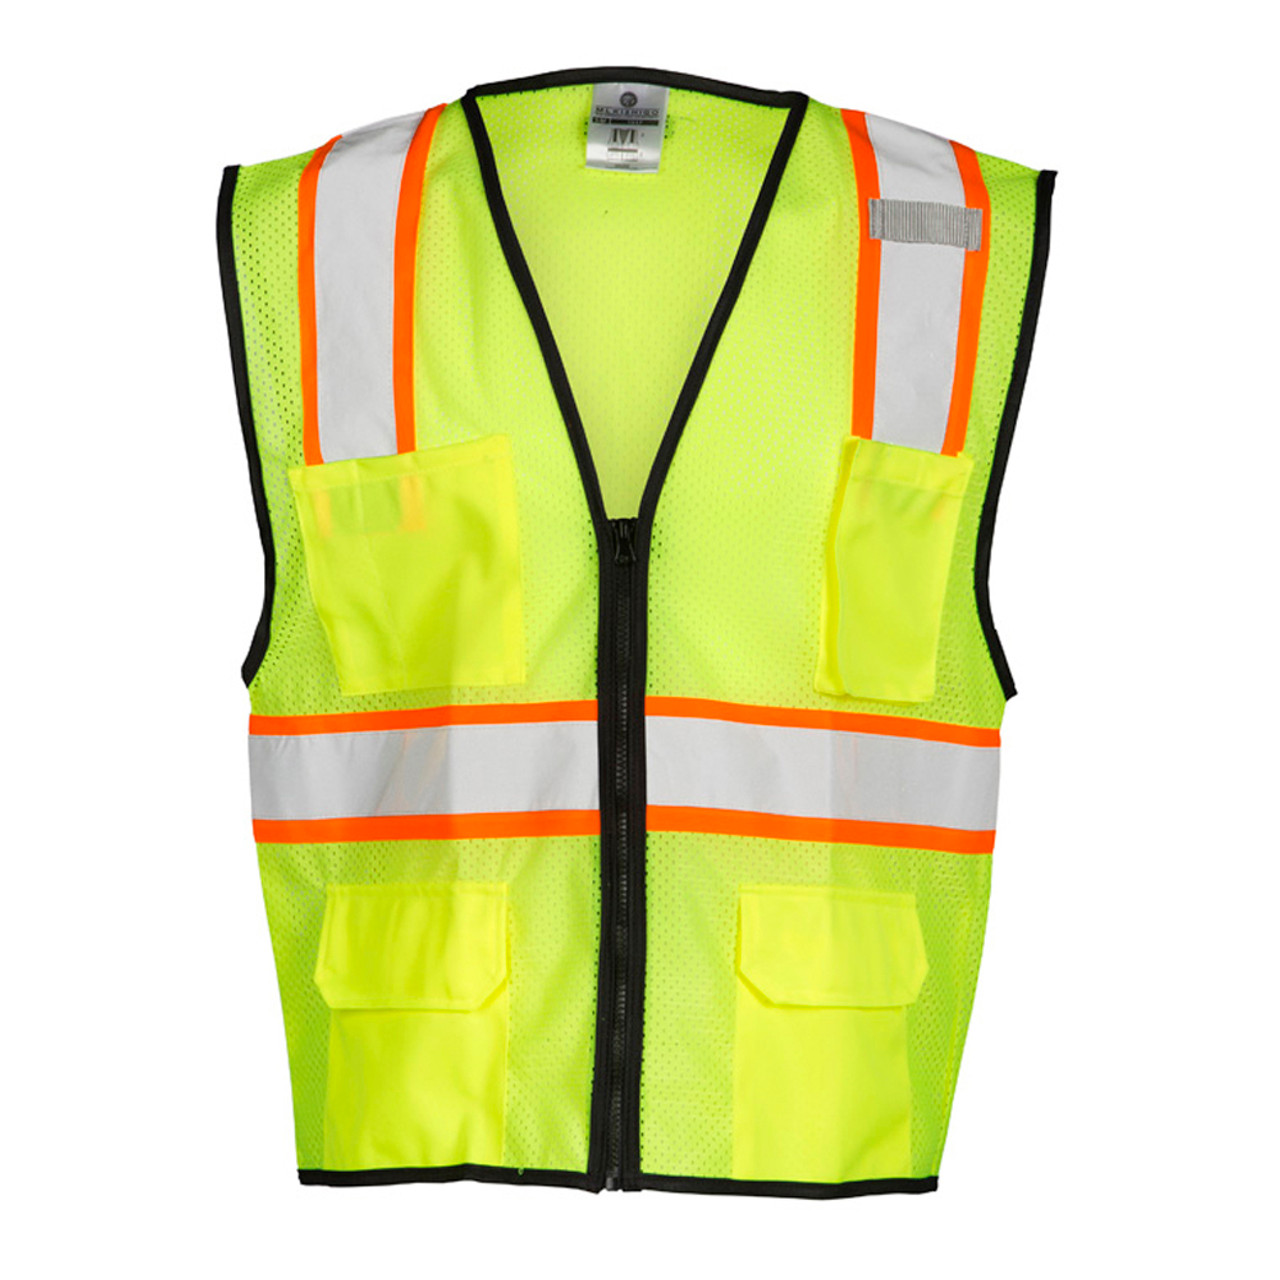 Safety Clothing Supply Black Mesh Vest High Visibility Pvc Reflective Tape Zipper Front Security & Protection